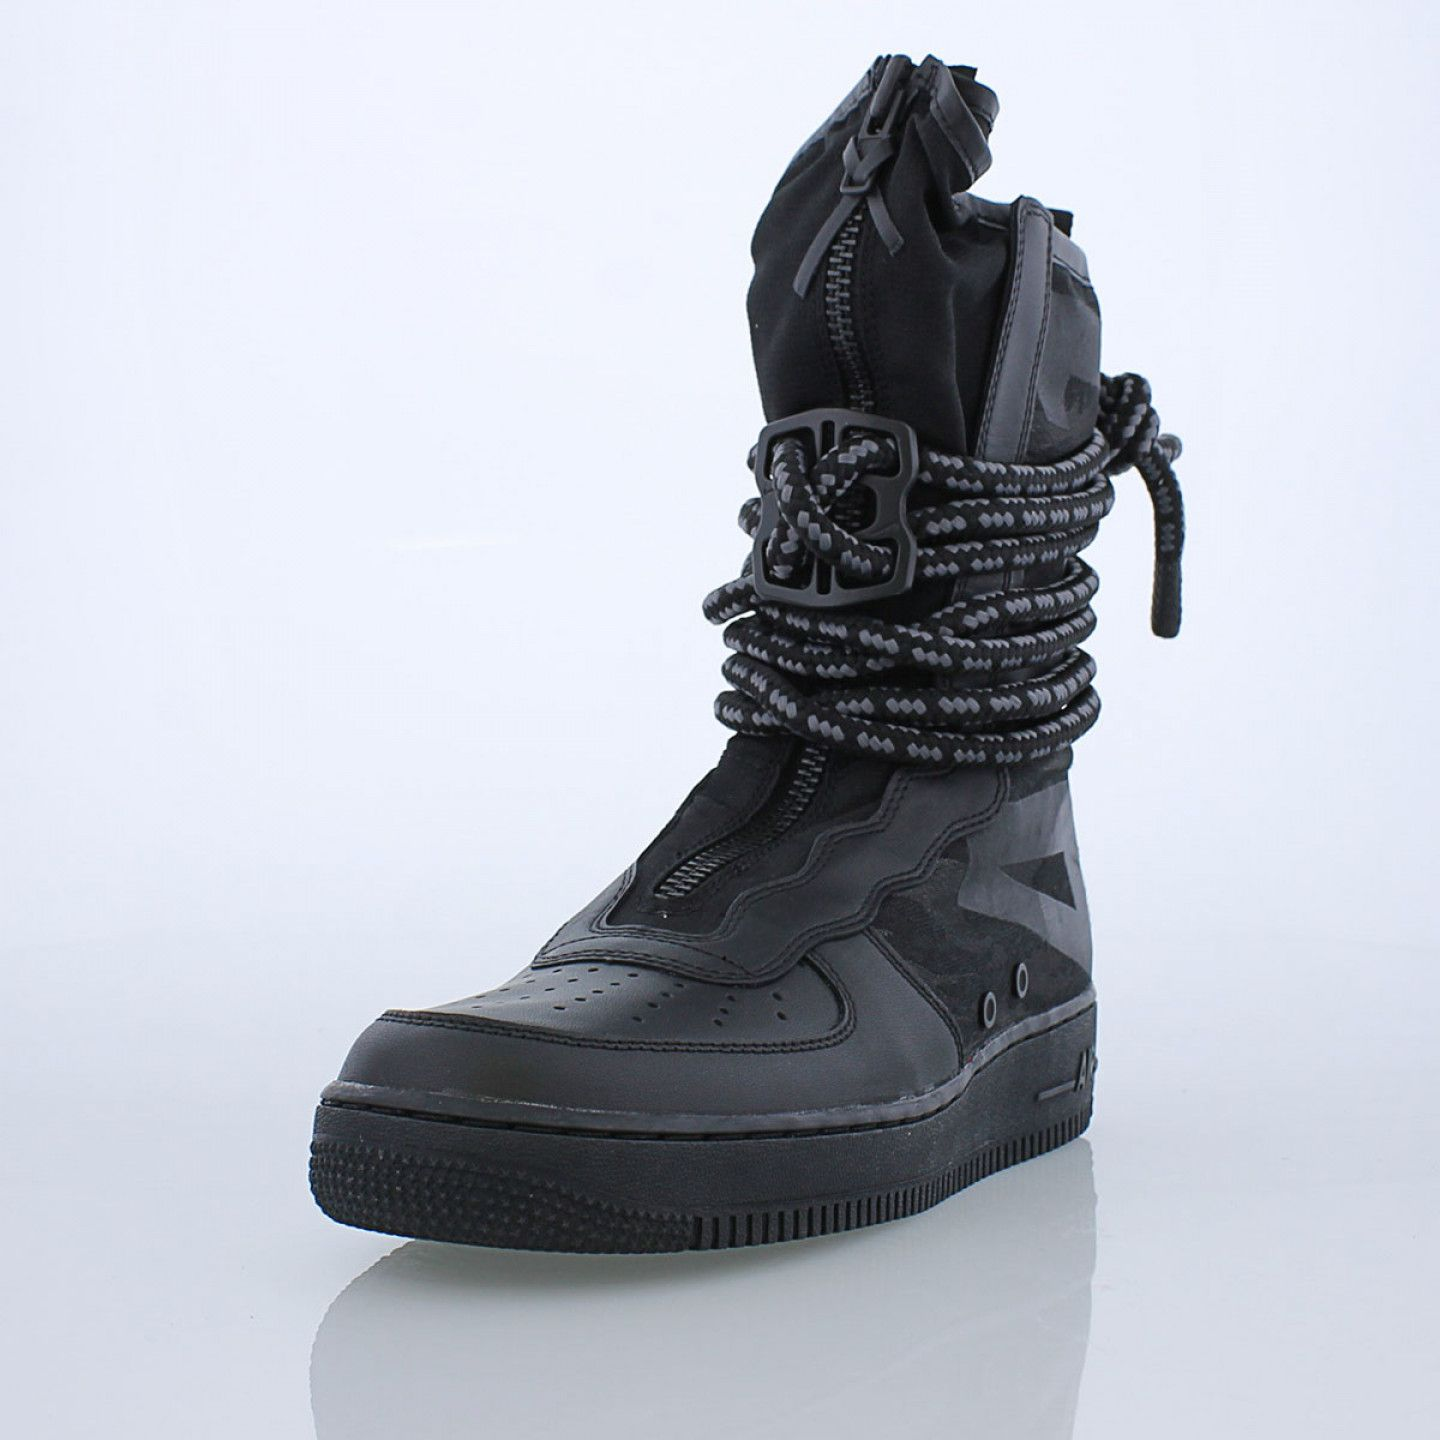 Nike SF Air Force High | Nike, High end fashion, All black